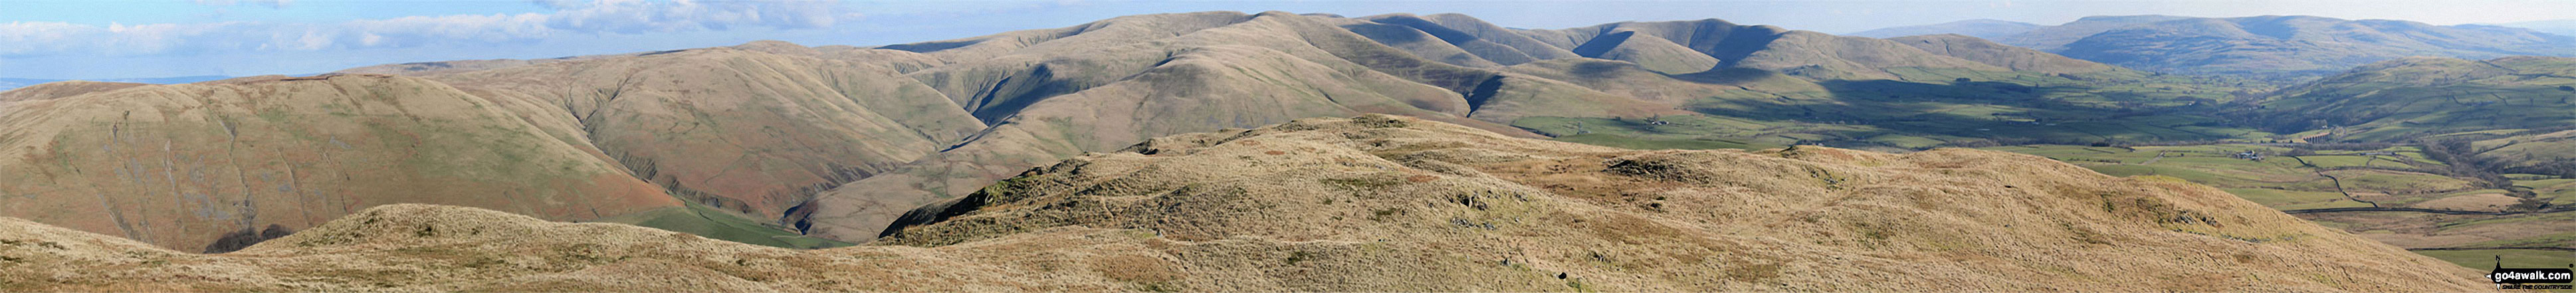 Blease Fell and The Howgill Fells 2000ft'ers - Randygill Top, The Calf, Calders and Fell Head (Howgills) - from Grayrigg Pike (Grayrigg Forest) summit